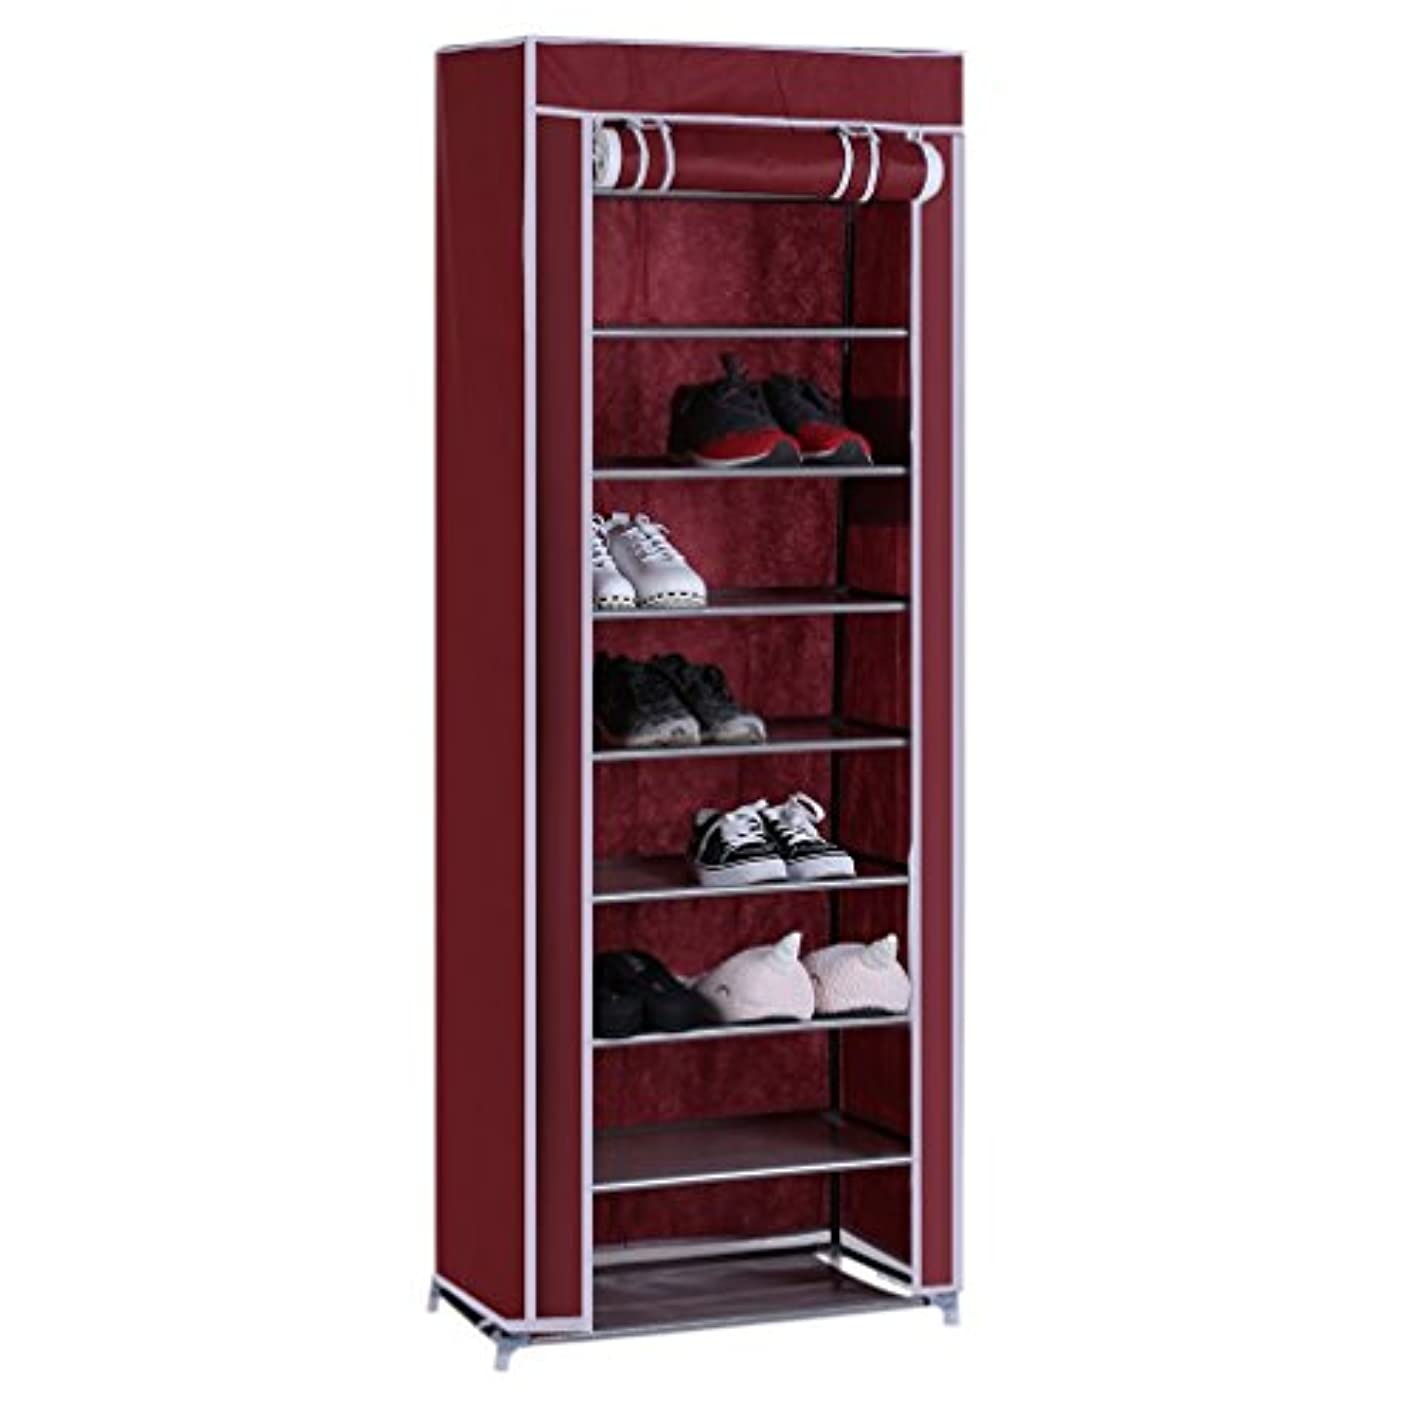 Homgrace 10 Tiers Shoe Rack Shoe Storage Organizer Cabinet Tower with Non-Woven Fabric Cover Shoes Storage Racks (Wine red)